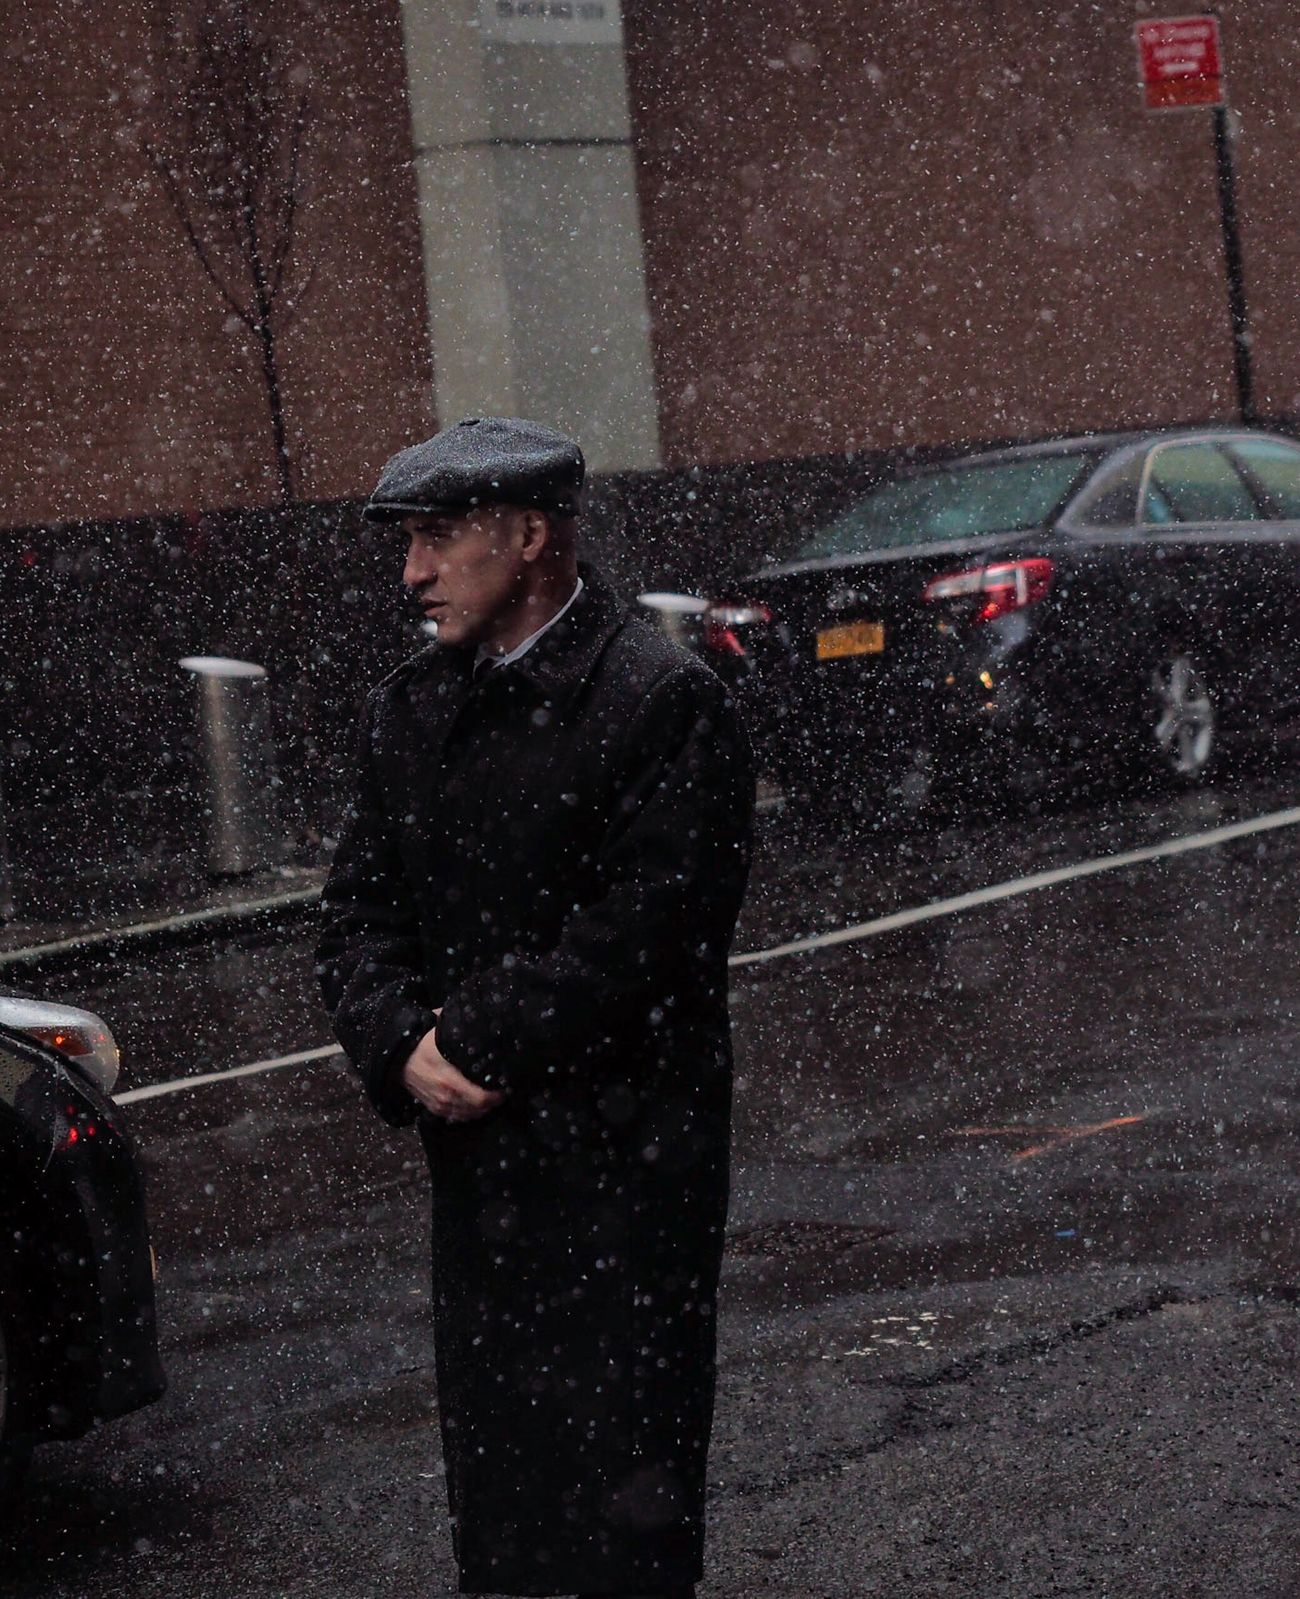 Winter is here! The Street Photographer - 2017 EyeEm Awards Three Quarter Length One Person Weather Snowing Street Transportation Car Cold Temperature Standing Outdoors Young Adult One Man Only Night Road Winter Man Manhattan NYC Street Photography Adults Only City Only Men Adult This Week On Eye Em This Week On Eyeem